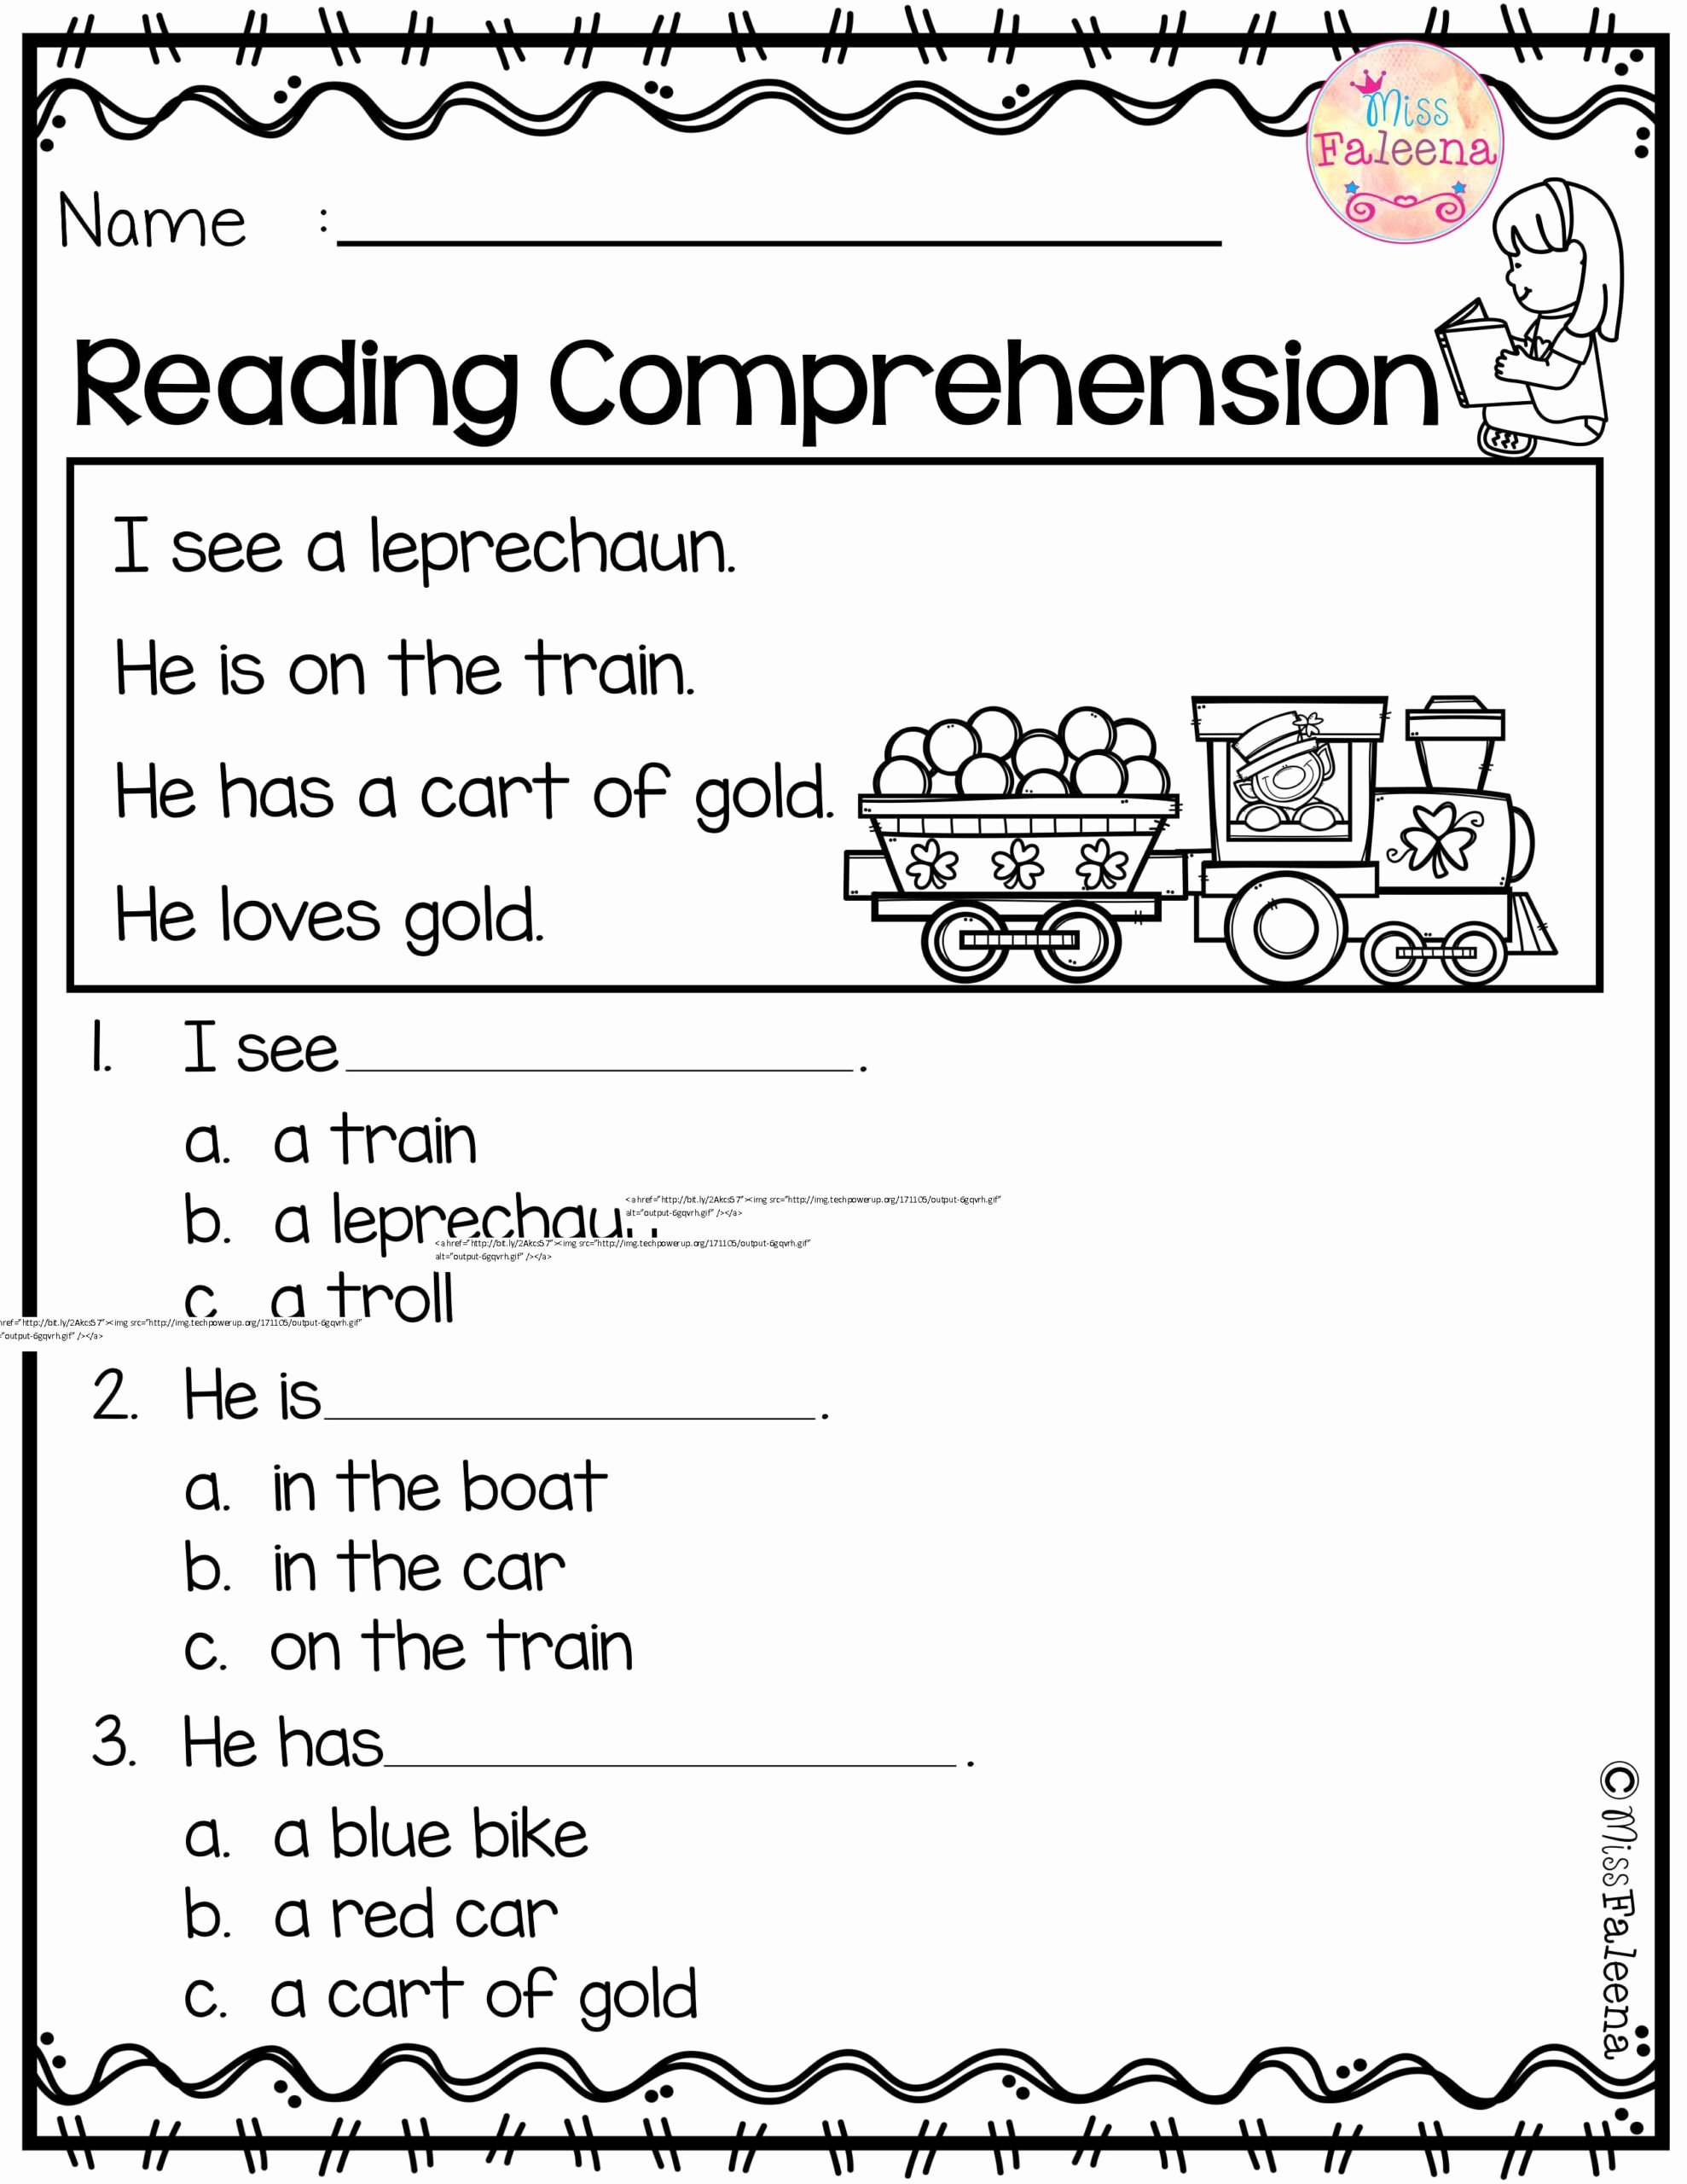 March Worksheets for Preschoolers Awesome March Reading Prehension English Worksheets for